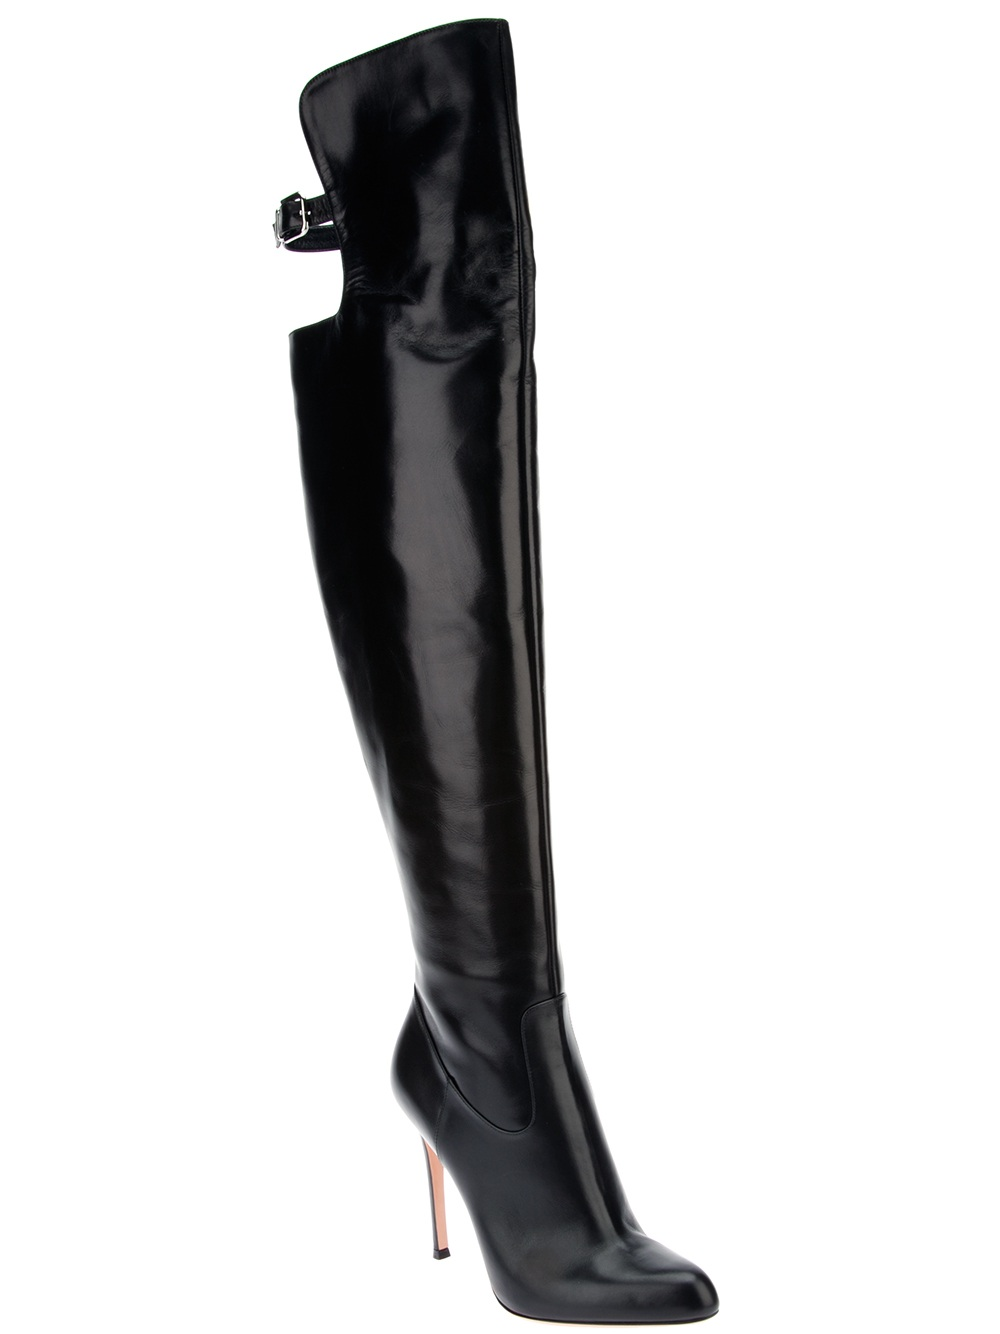 Black Knee High Leather Boots - Gommap Blog